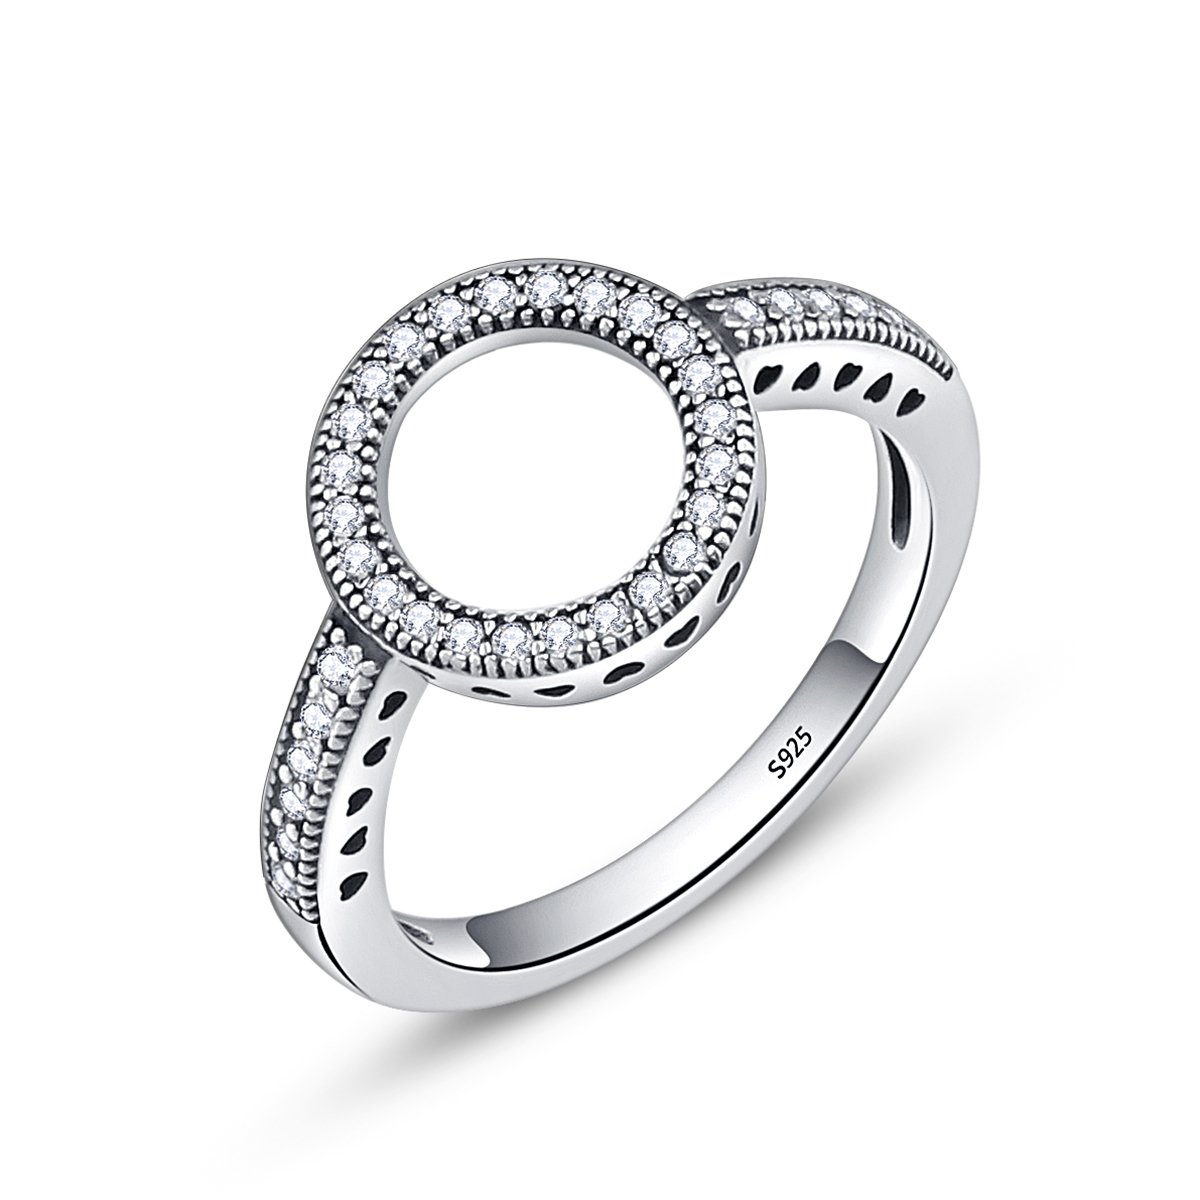 BAMOER 925 Sterling Silver Circle of Life CZ Eternity Halo Ring for Women Promise Ring Size 6-9 (6)